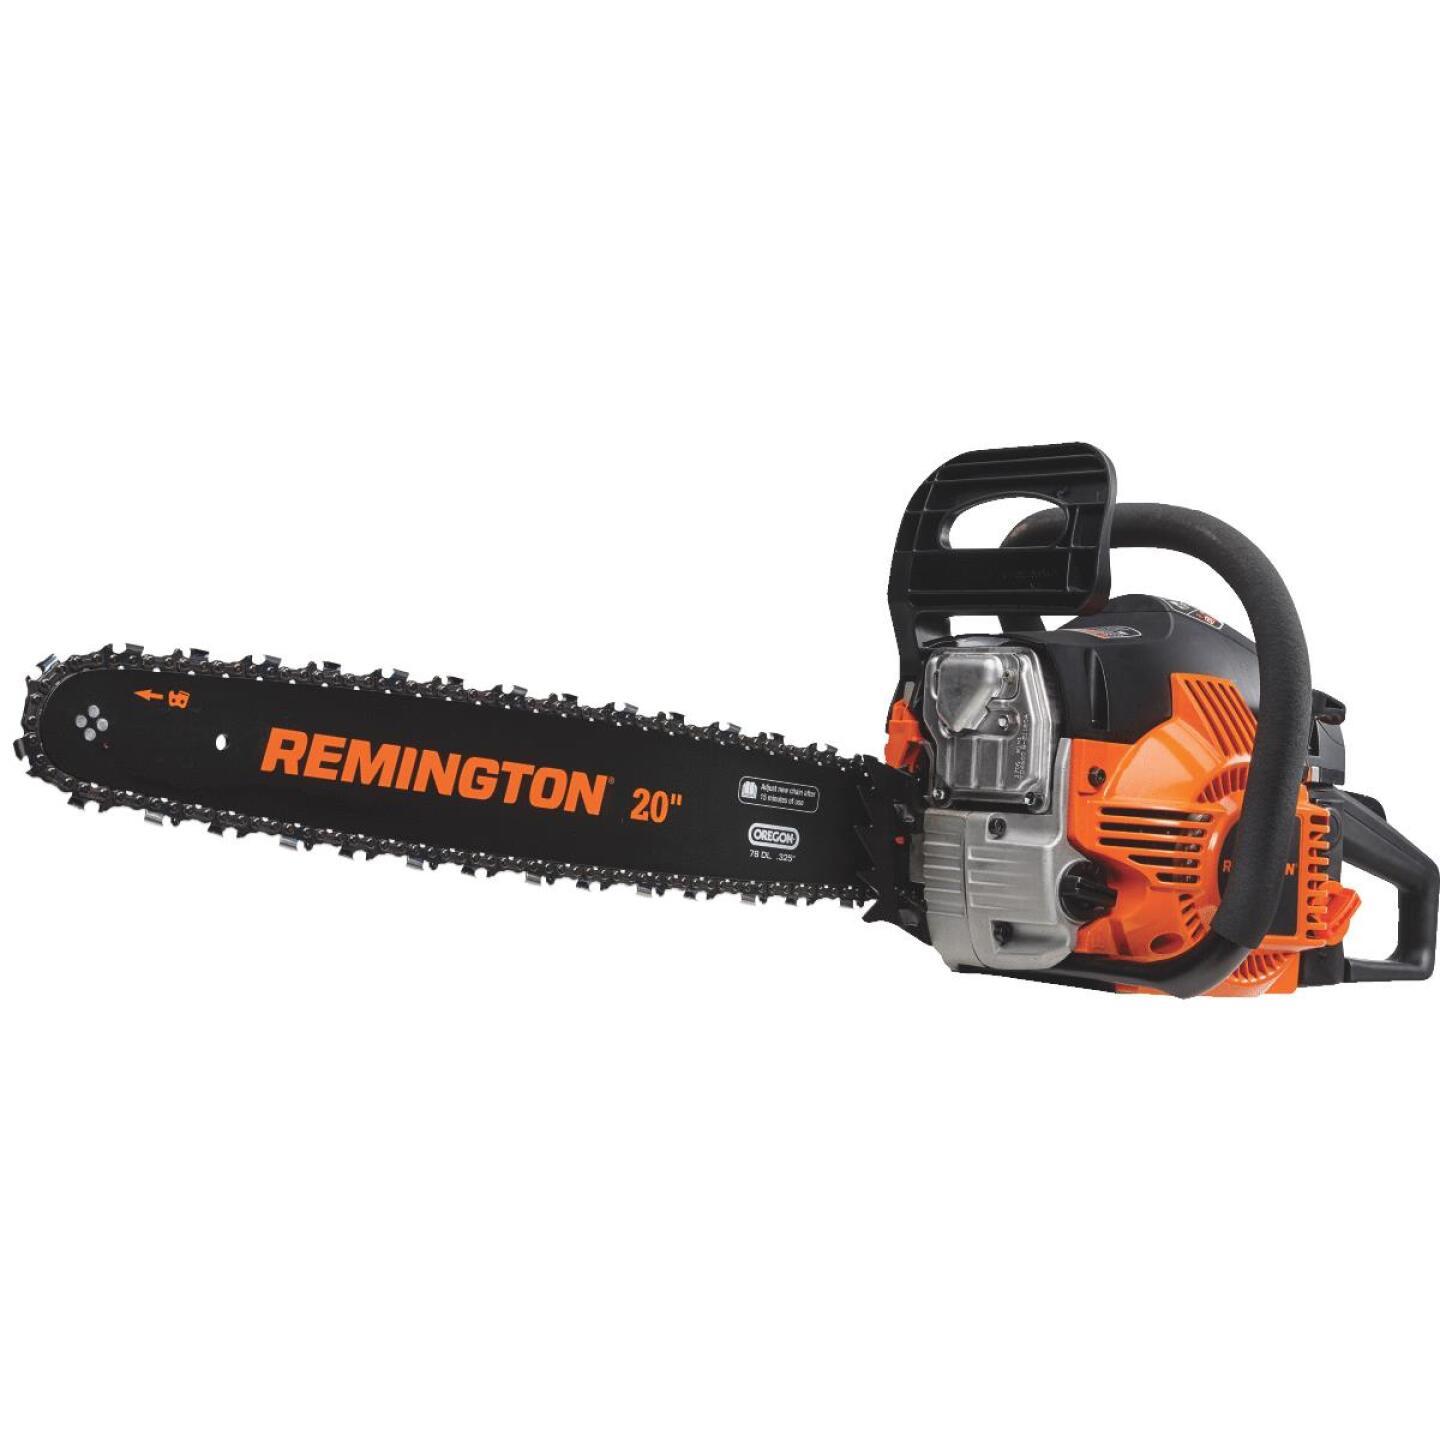 Remington Outlaw RM4620 20 In. 46 CC Gas Chainsaw Image 2